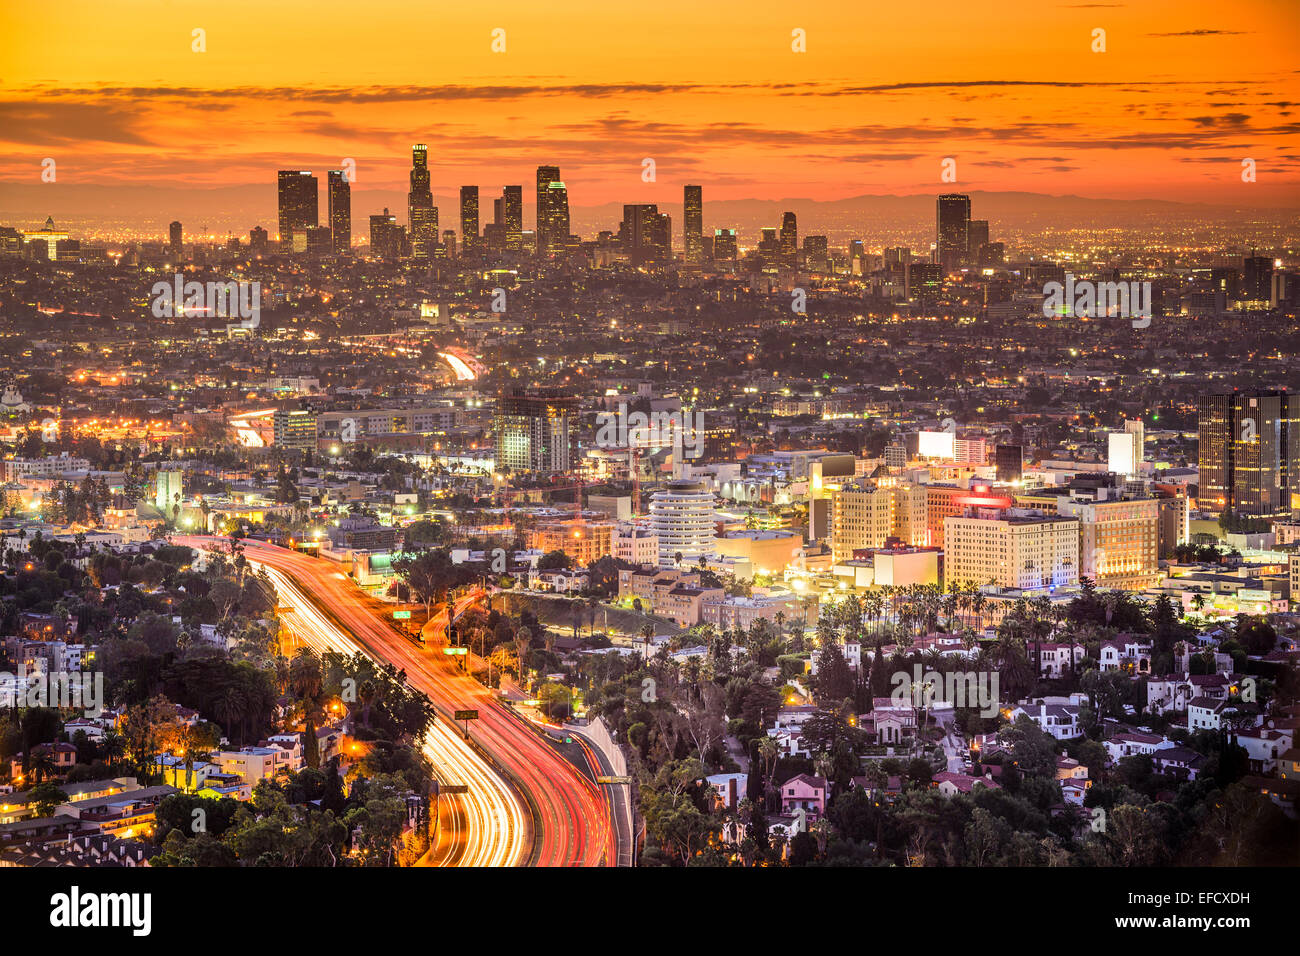 Los Angeles, California, USA downtown skyline at dawn. - Stock Image